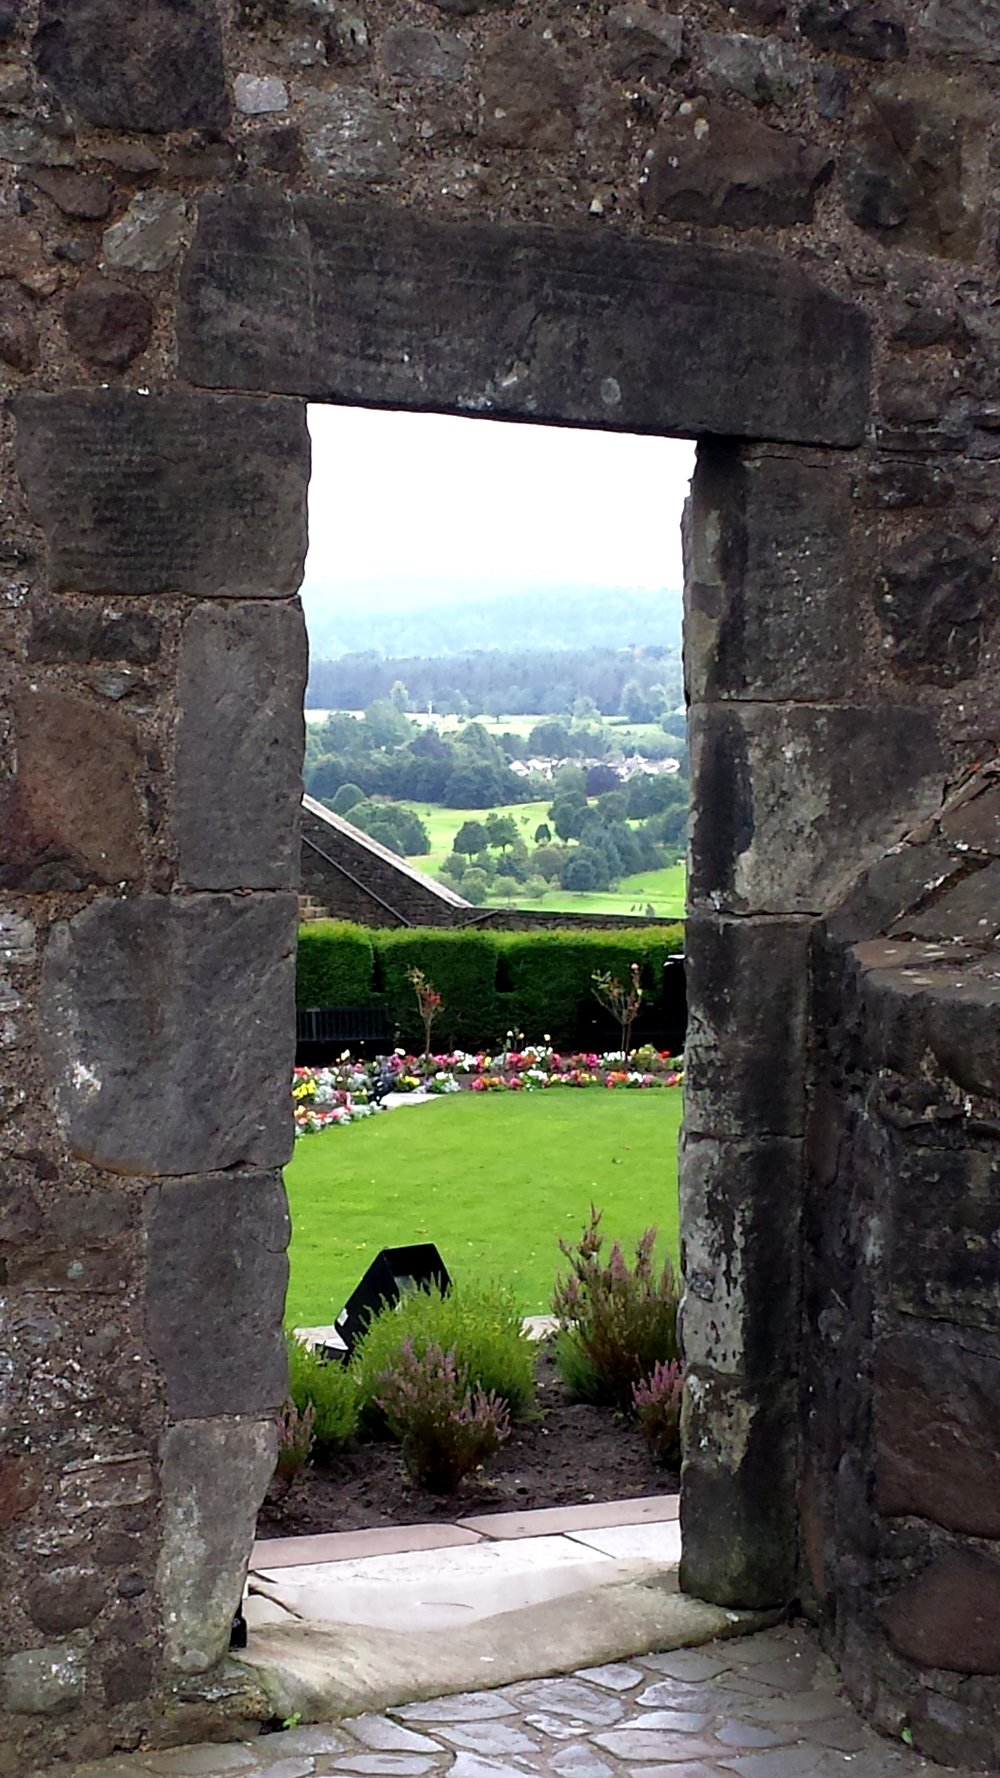 20160831_125507 stirling castle.jpg